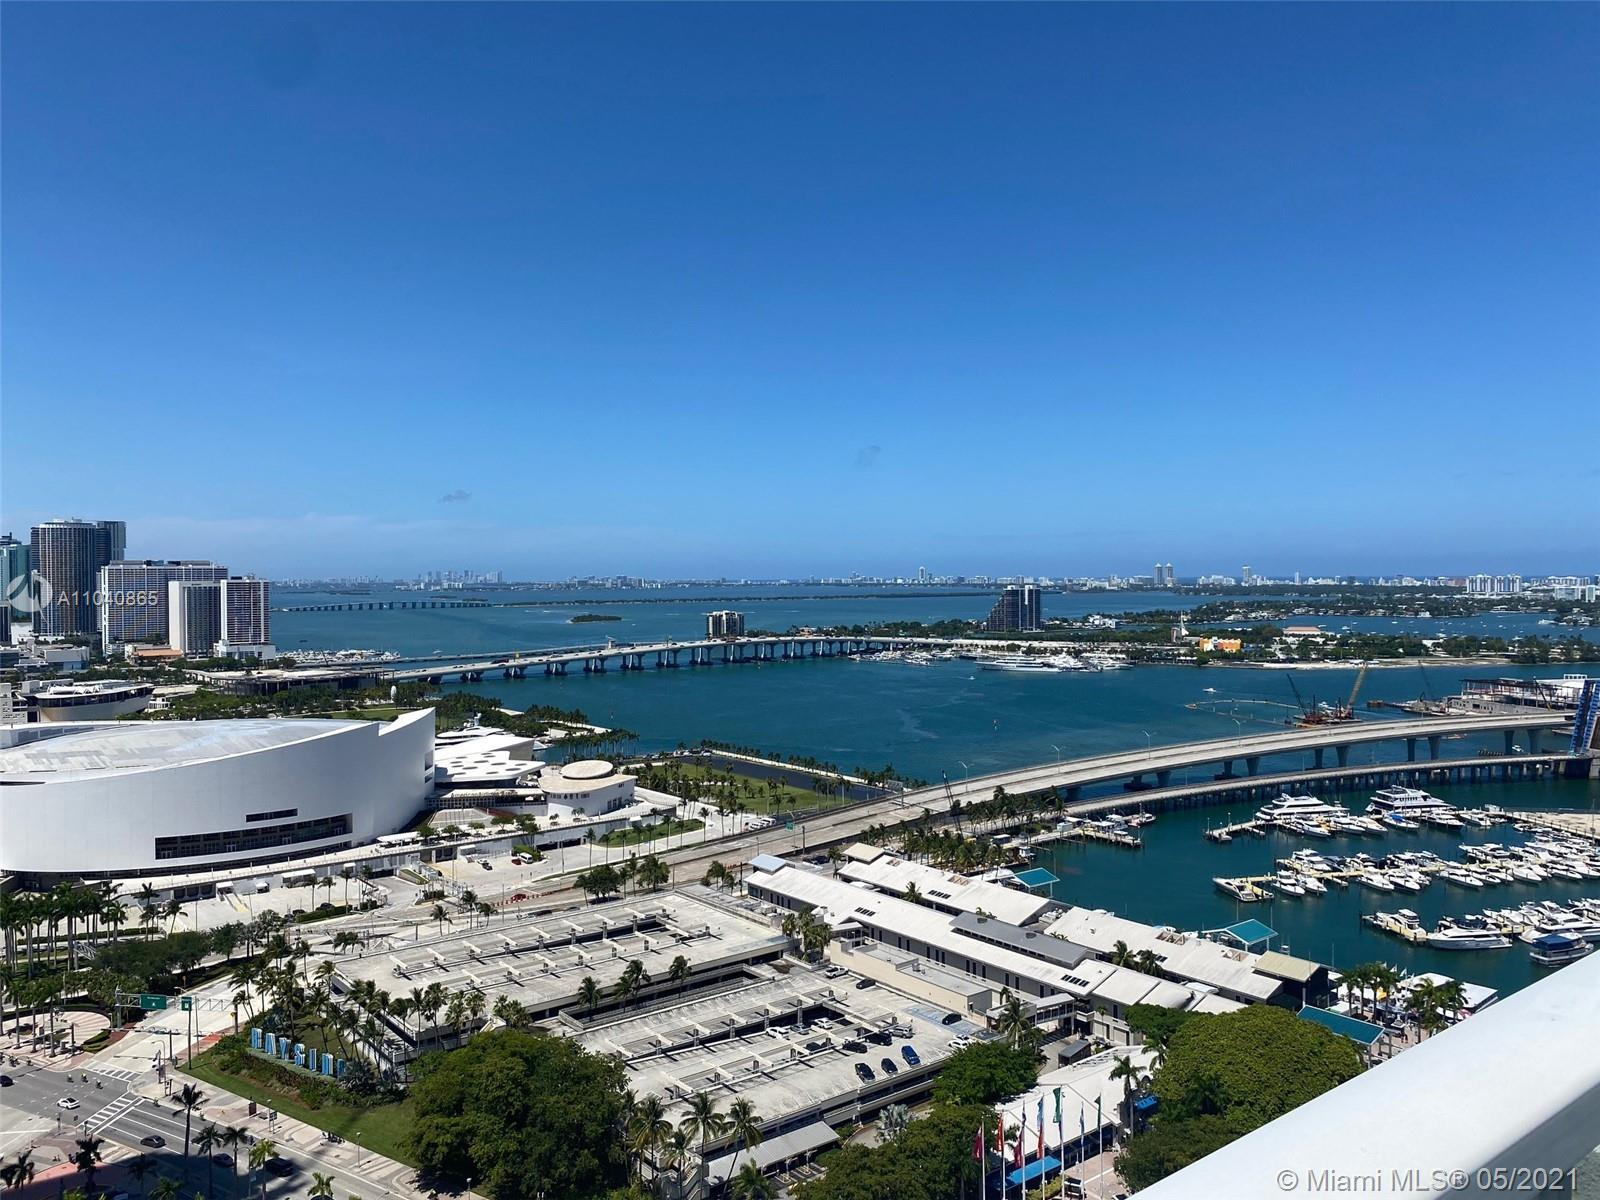 SPACIOUS TWO BEDROOM LAYOUT WITH STUNNING VIEWS OF BISCAYNE BAY AND DOWNTOWN MIAMI. CORNER UNIT WITH AN EXTENDED WRAPAROUND TERRACE, WHITE PORCELIAN FLOORS, AND OPEN FLOORPLAN. ONE ASSIGNED PARKING SPACE AND STORAGE UNIT INCLUDED IN SALE. VIZCAYNE OFFERS LUXURIOUS AMENITIES WITH 4 POOLS, RECENTLY REDONE STATE OF THE ART GYM, CLUBHOUSE, SPA, THEATER & MEDIA ROOM, BUSINESS CENTERS, ETC. FANTASTIC LOCATION WITH ALL THE BEST THAT DOWNTOWN HAS TO OFFER WITHIN FOOTSTEPS AND EASY ACCESS TO METRORAIL, BRIGHTLINE AND MORE. CALL LA FOR EASY SHOWING. TENANT OCCUPIED TIL JUNE 15 2021